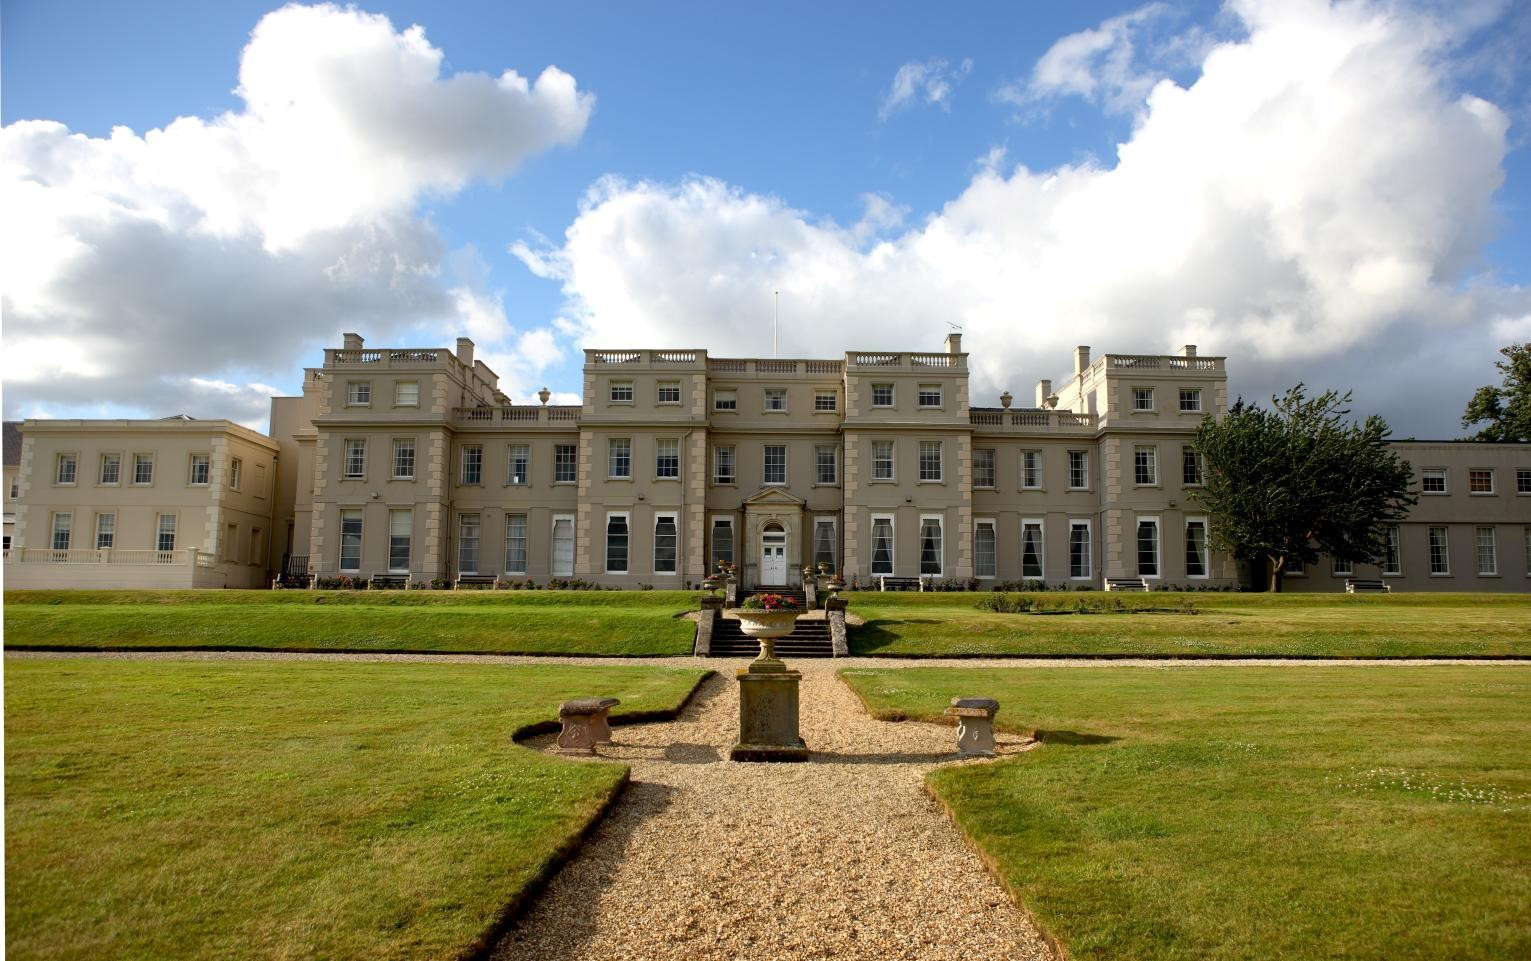 Picture of De Vere Wokefield Estate